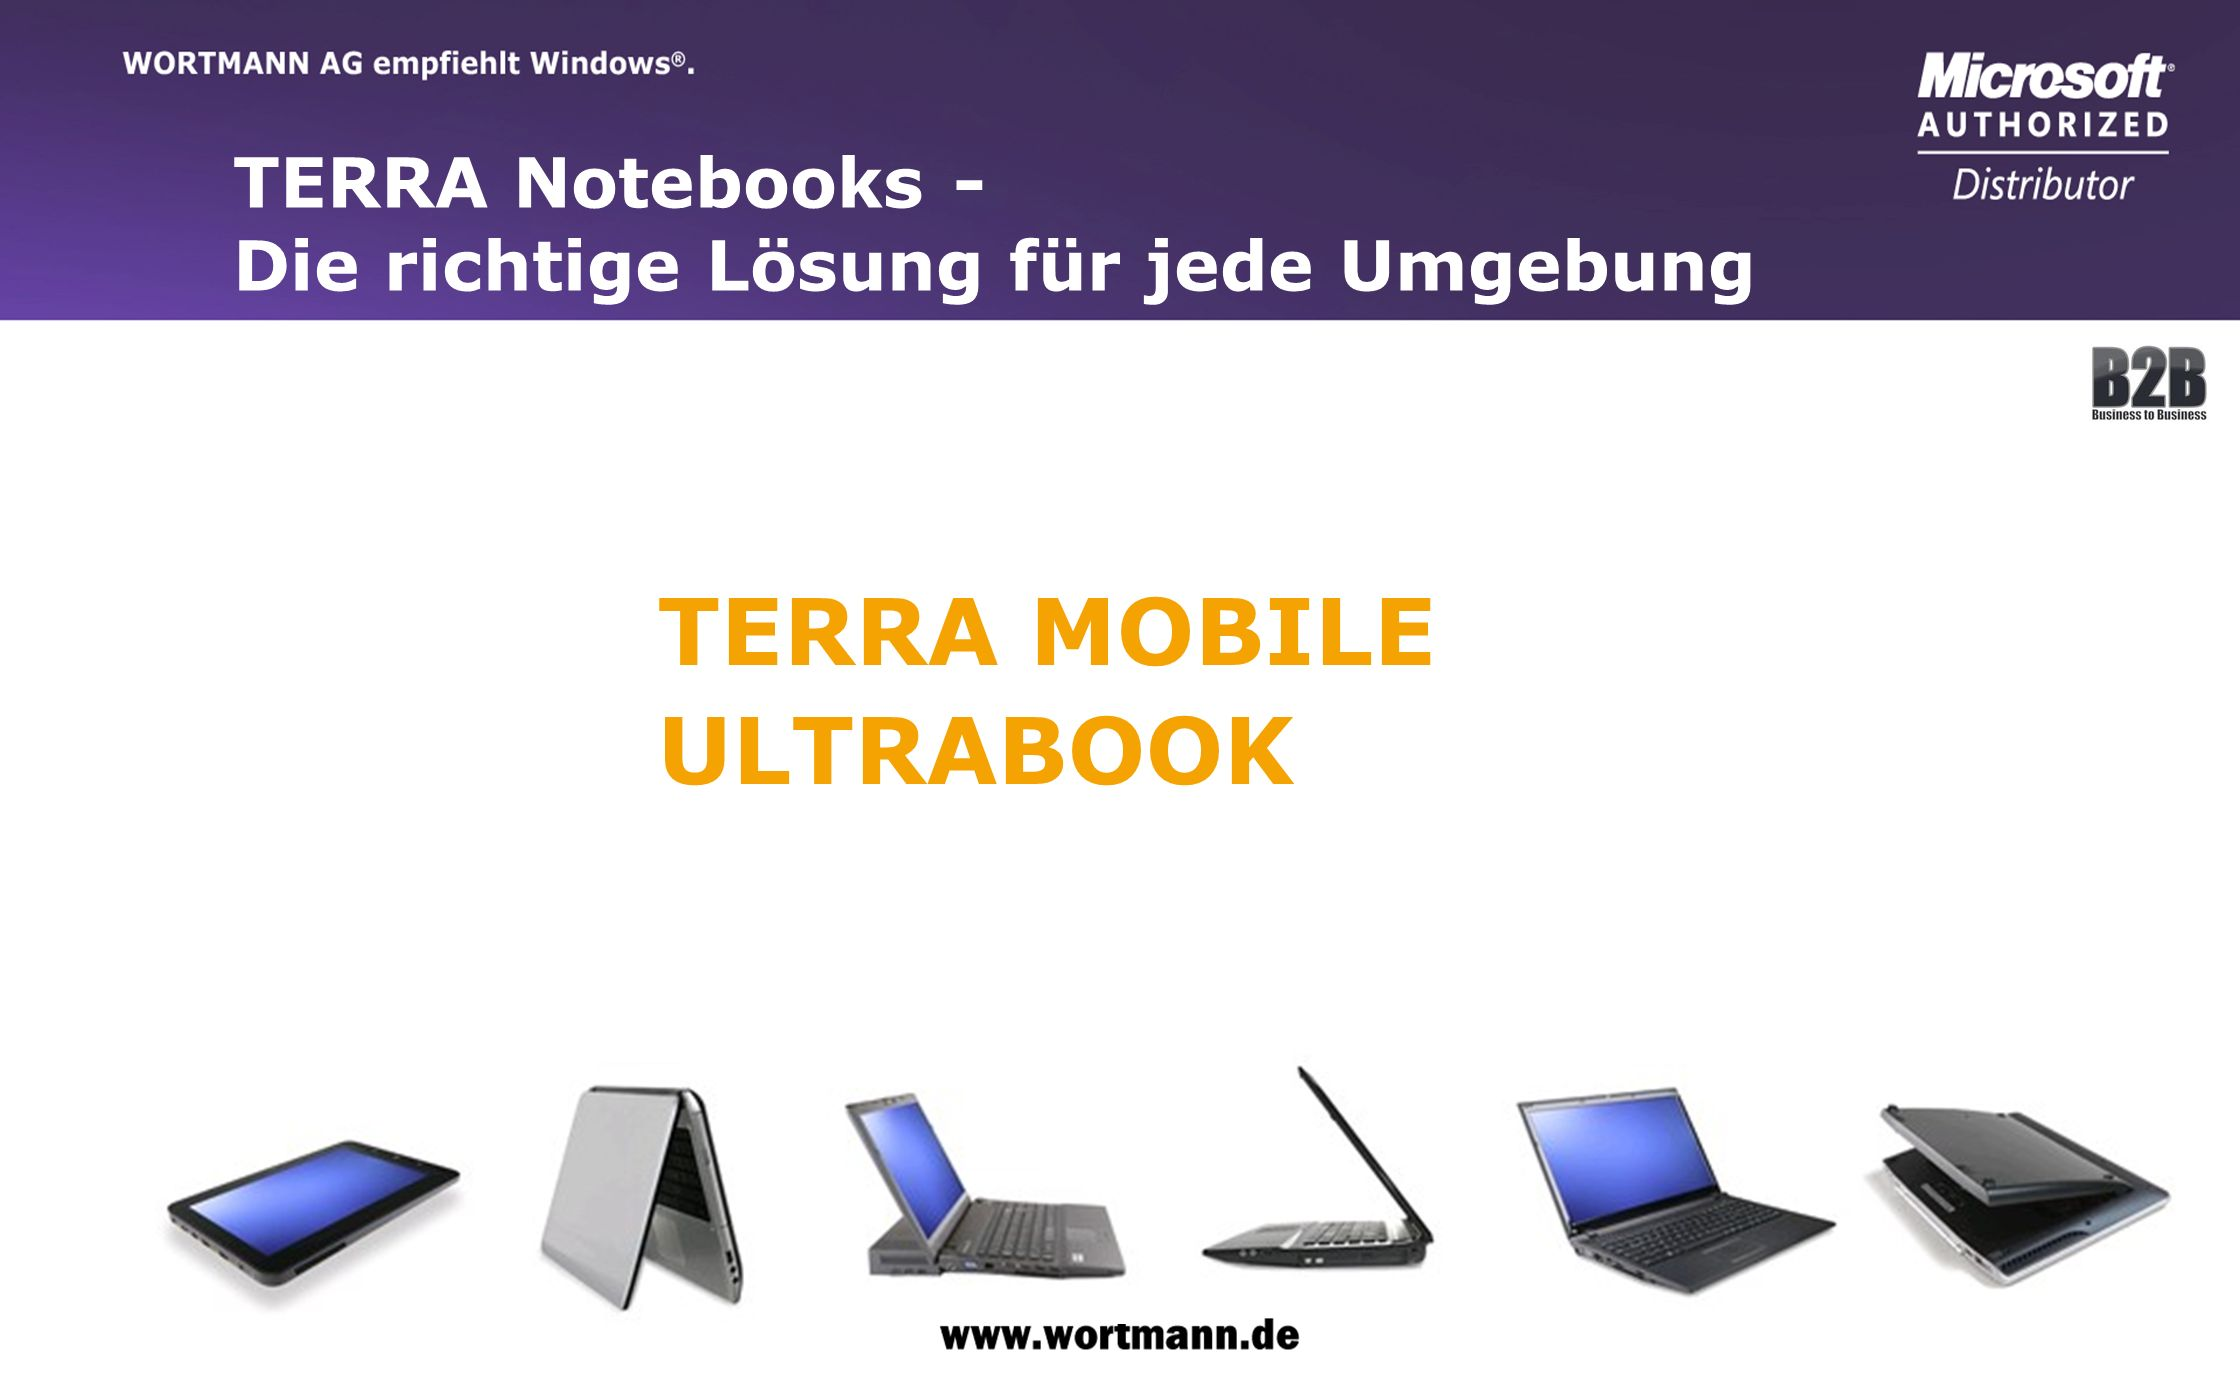 TERRA MOBILE ULTRABOOK TERRA Notebooks -